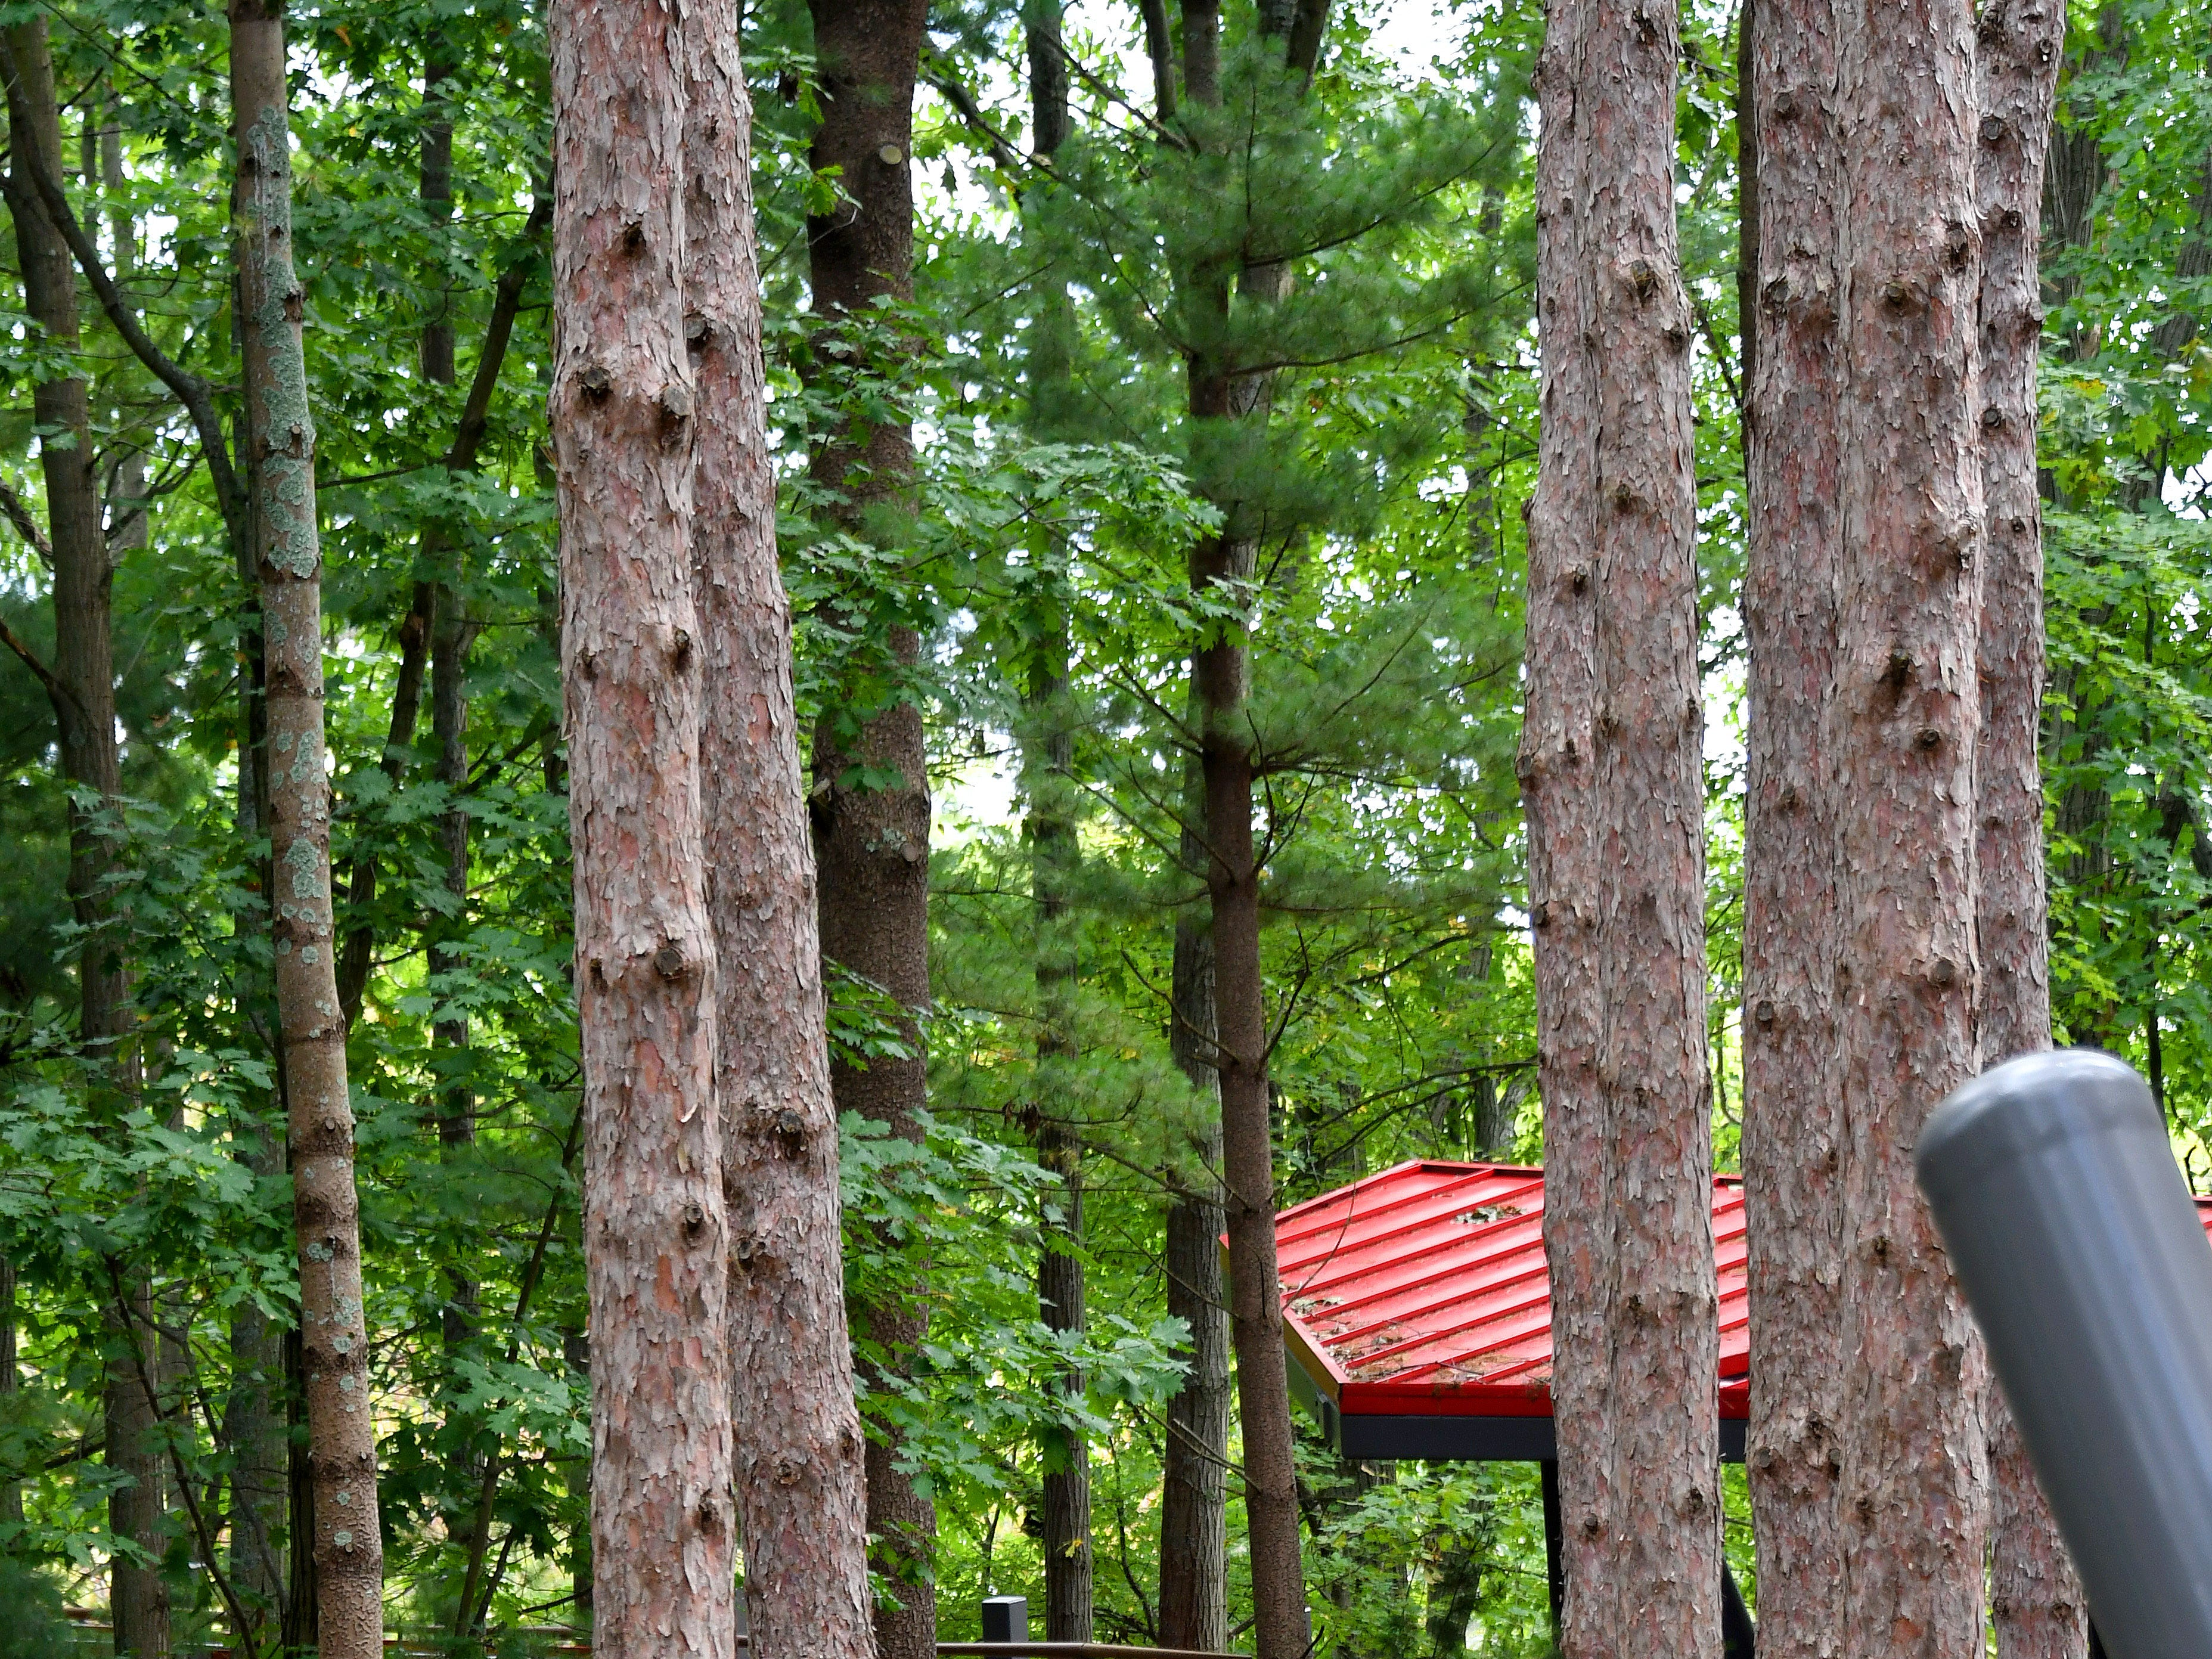 The Canopy Walk winds between the red pines.